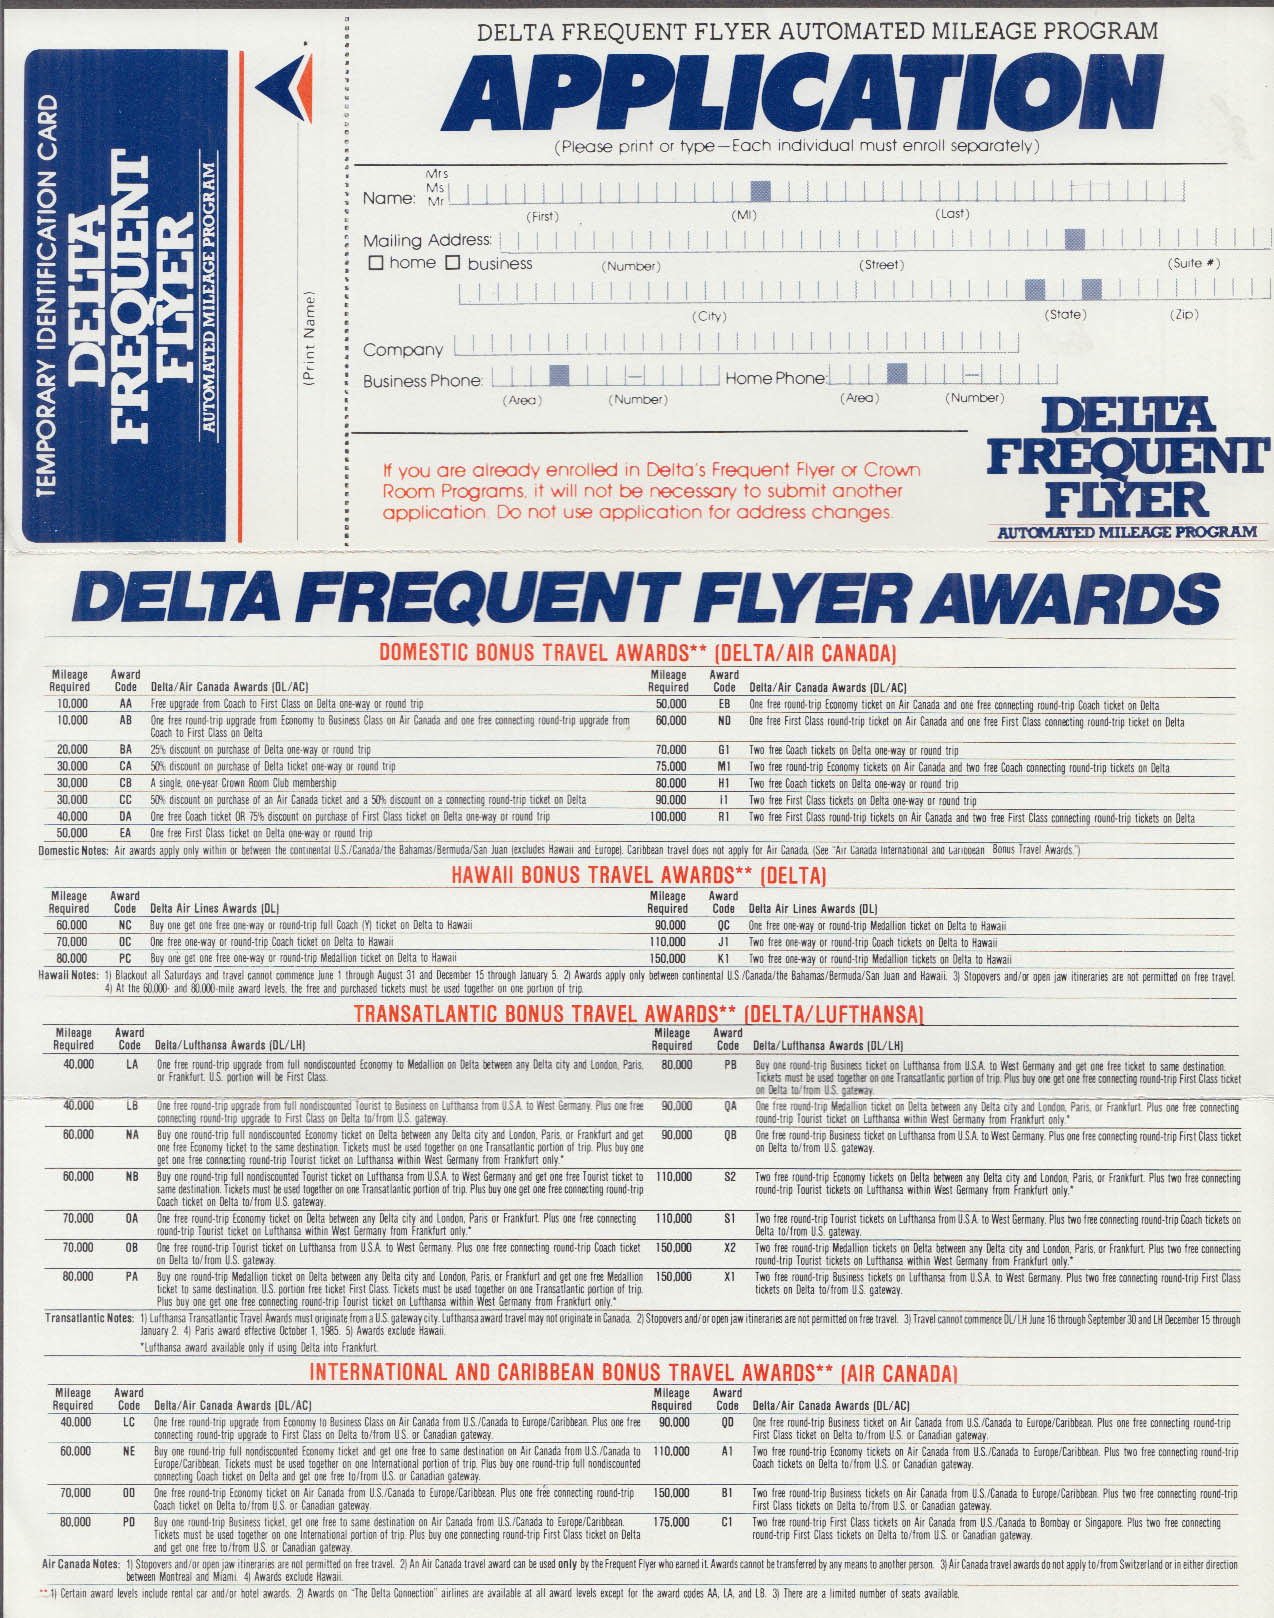 Delta Air Lines Fly Free Frequent Flyer Program Application airline mailer 1985